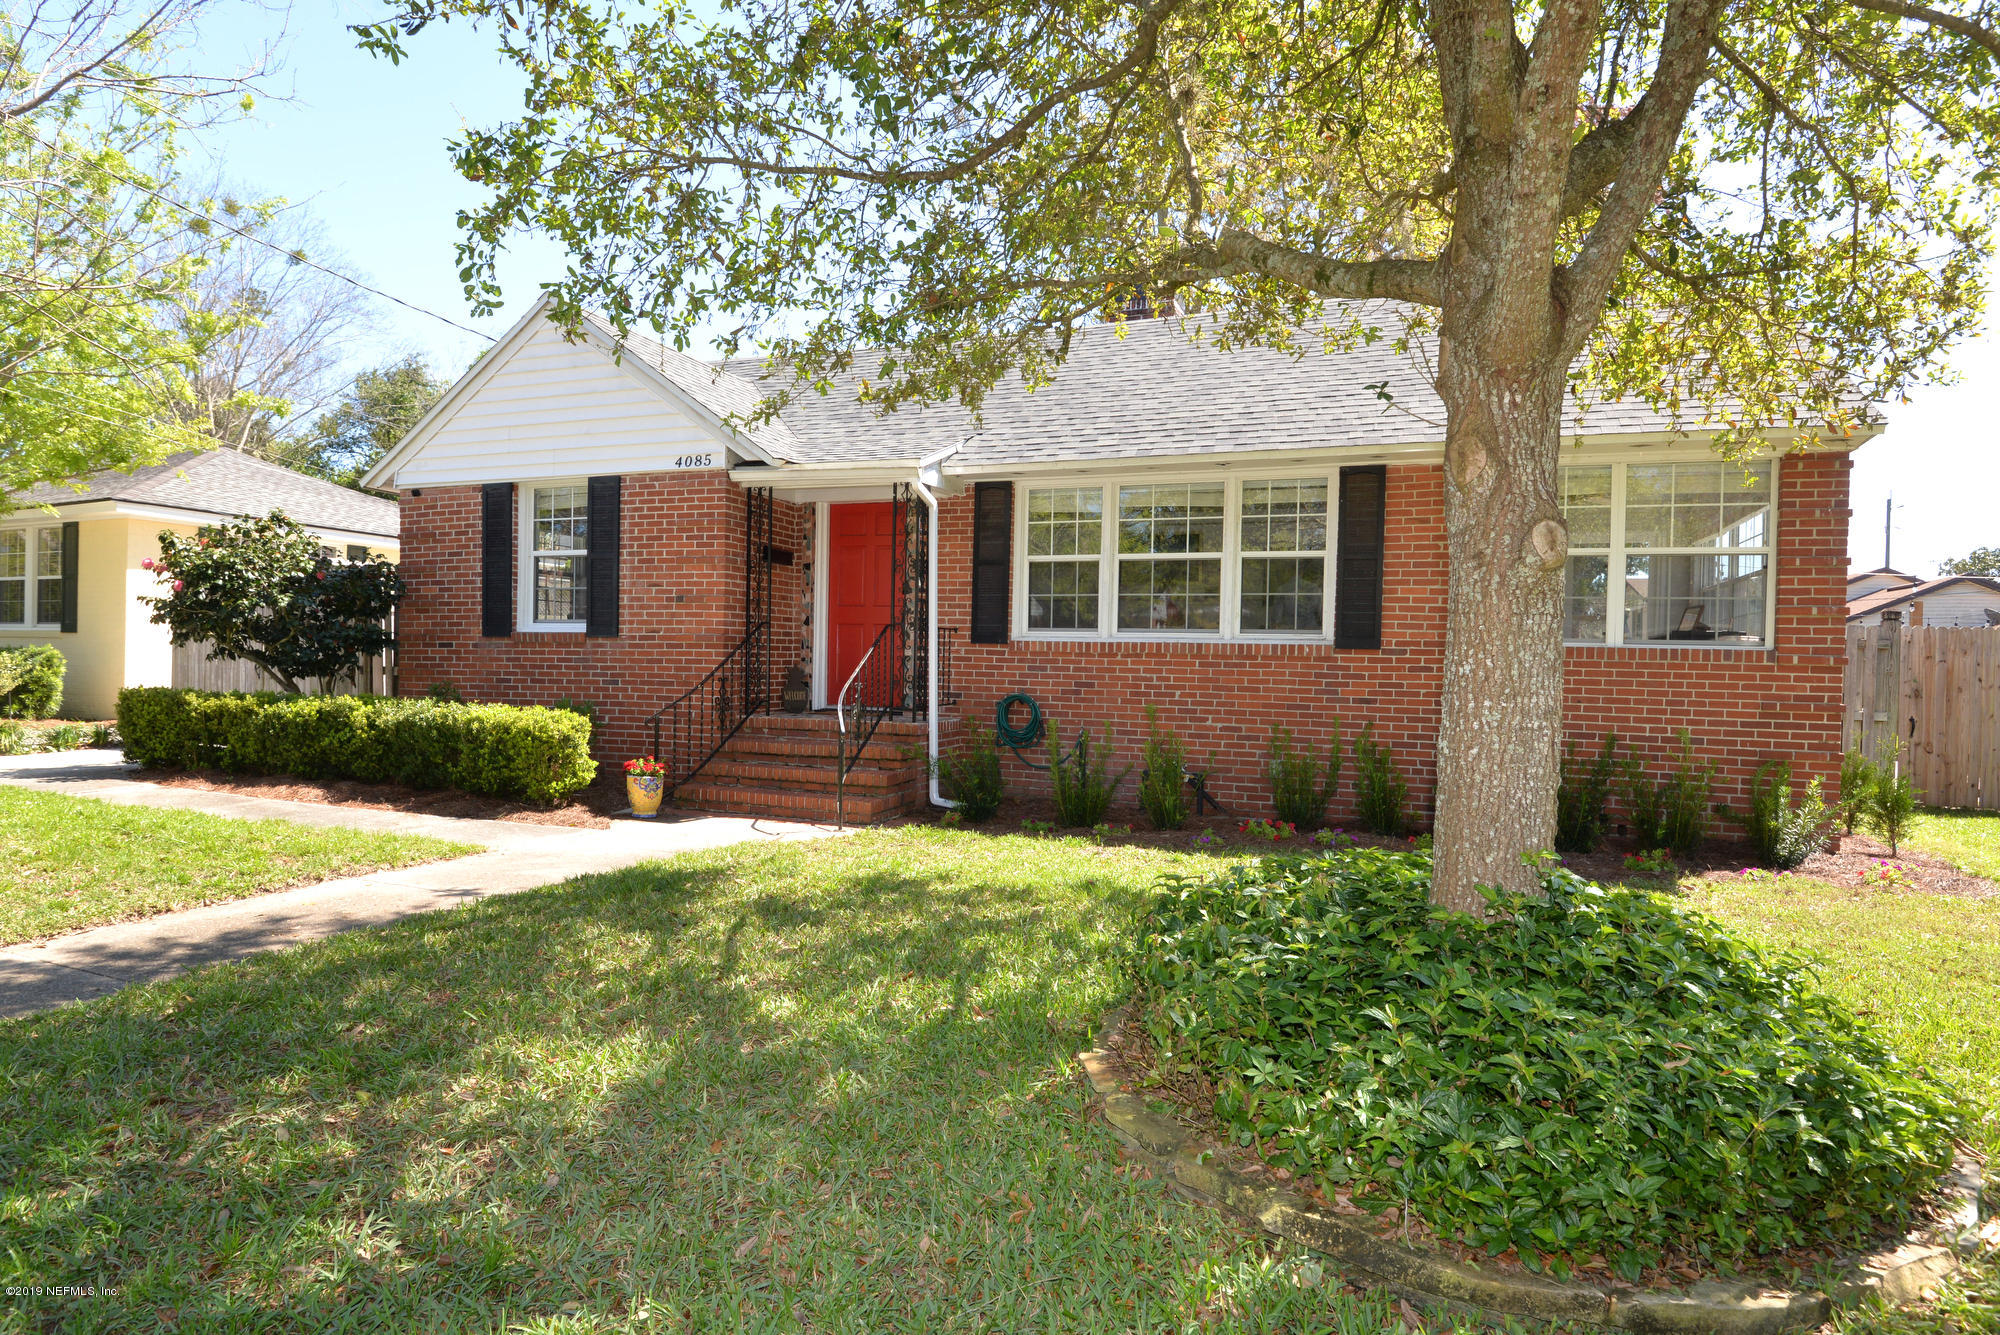 4085 LONDON, JACKSONVILLE, FLORIDA 32207, 3 Bedrooms Bedrooms, ,2 BathroomsBathrooms,Residential - single family,For sale,LONDON,985443